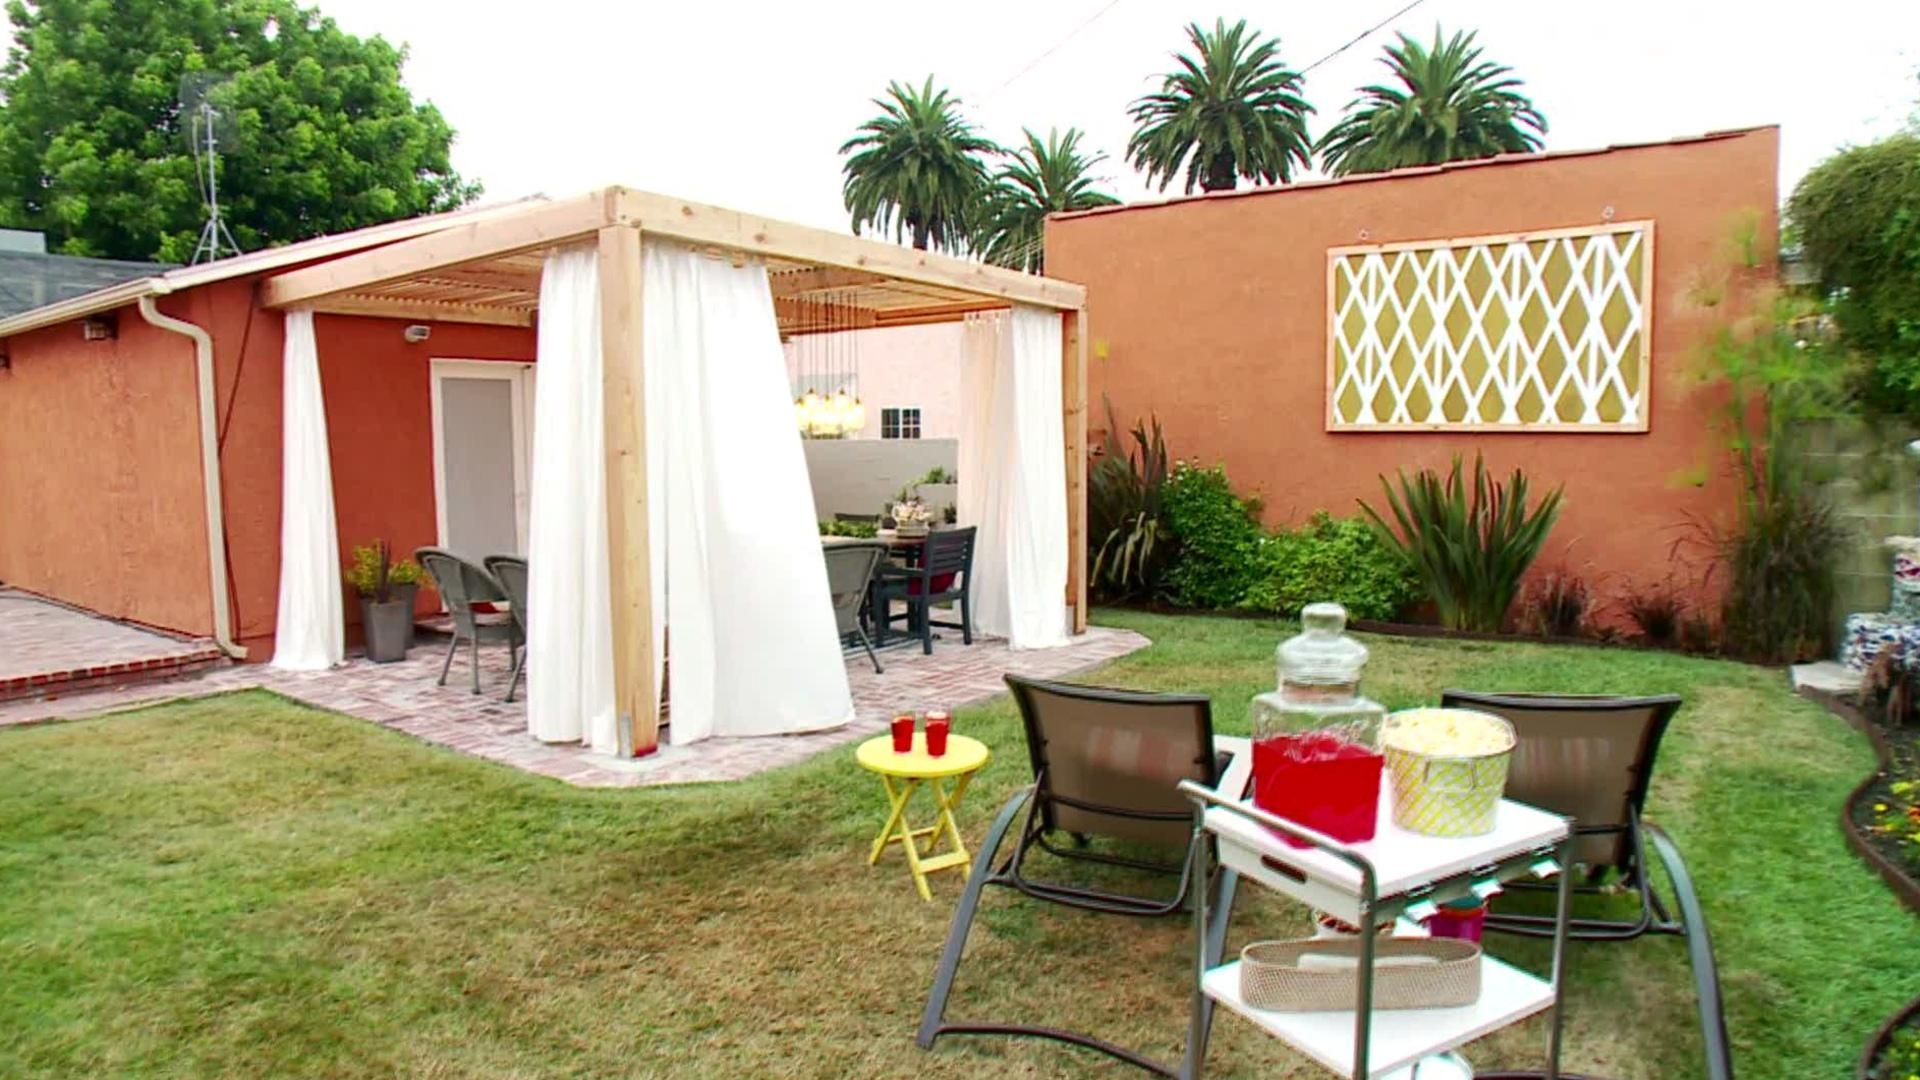 Backyard Landscaping On A Budget Outdoor Areas Unique Backyard in 11 Clever Ideas How to Make Backyard Remodel Ideas On A Budget